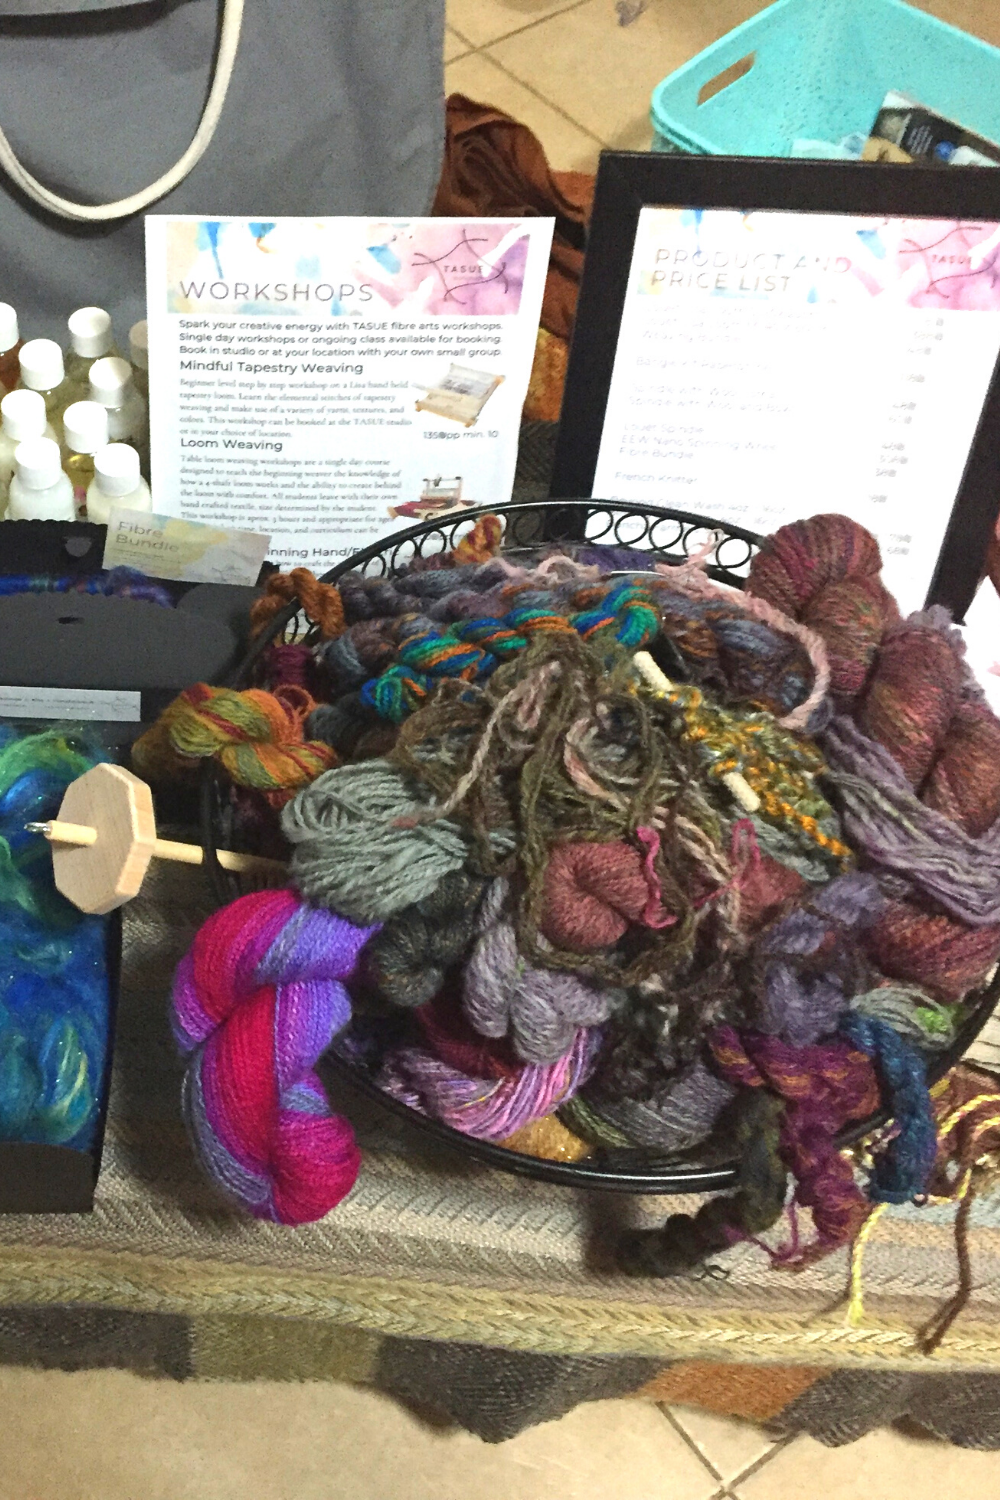 High quality hand spun yarn. Earthy yet vibrant colors, all made by hand in my studio. #Yarn #FiberArt #HandSpunYarn